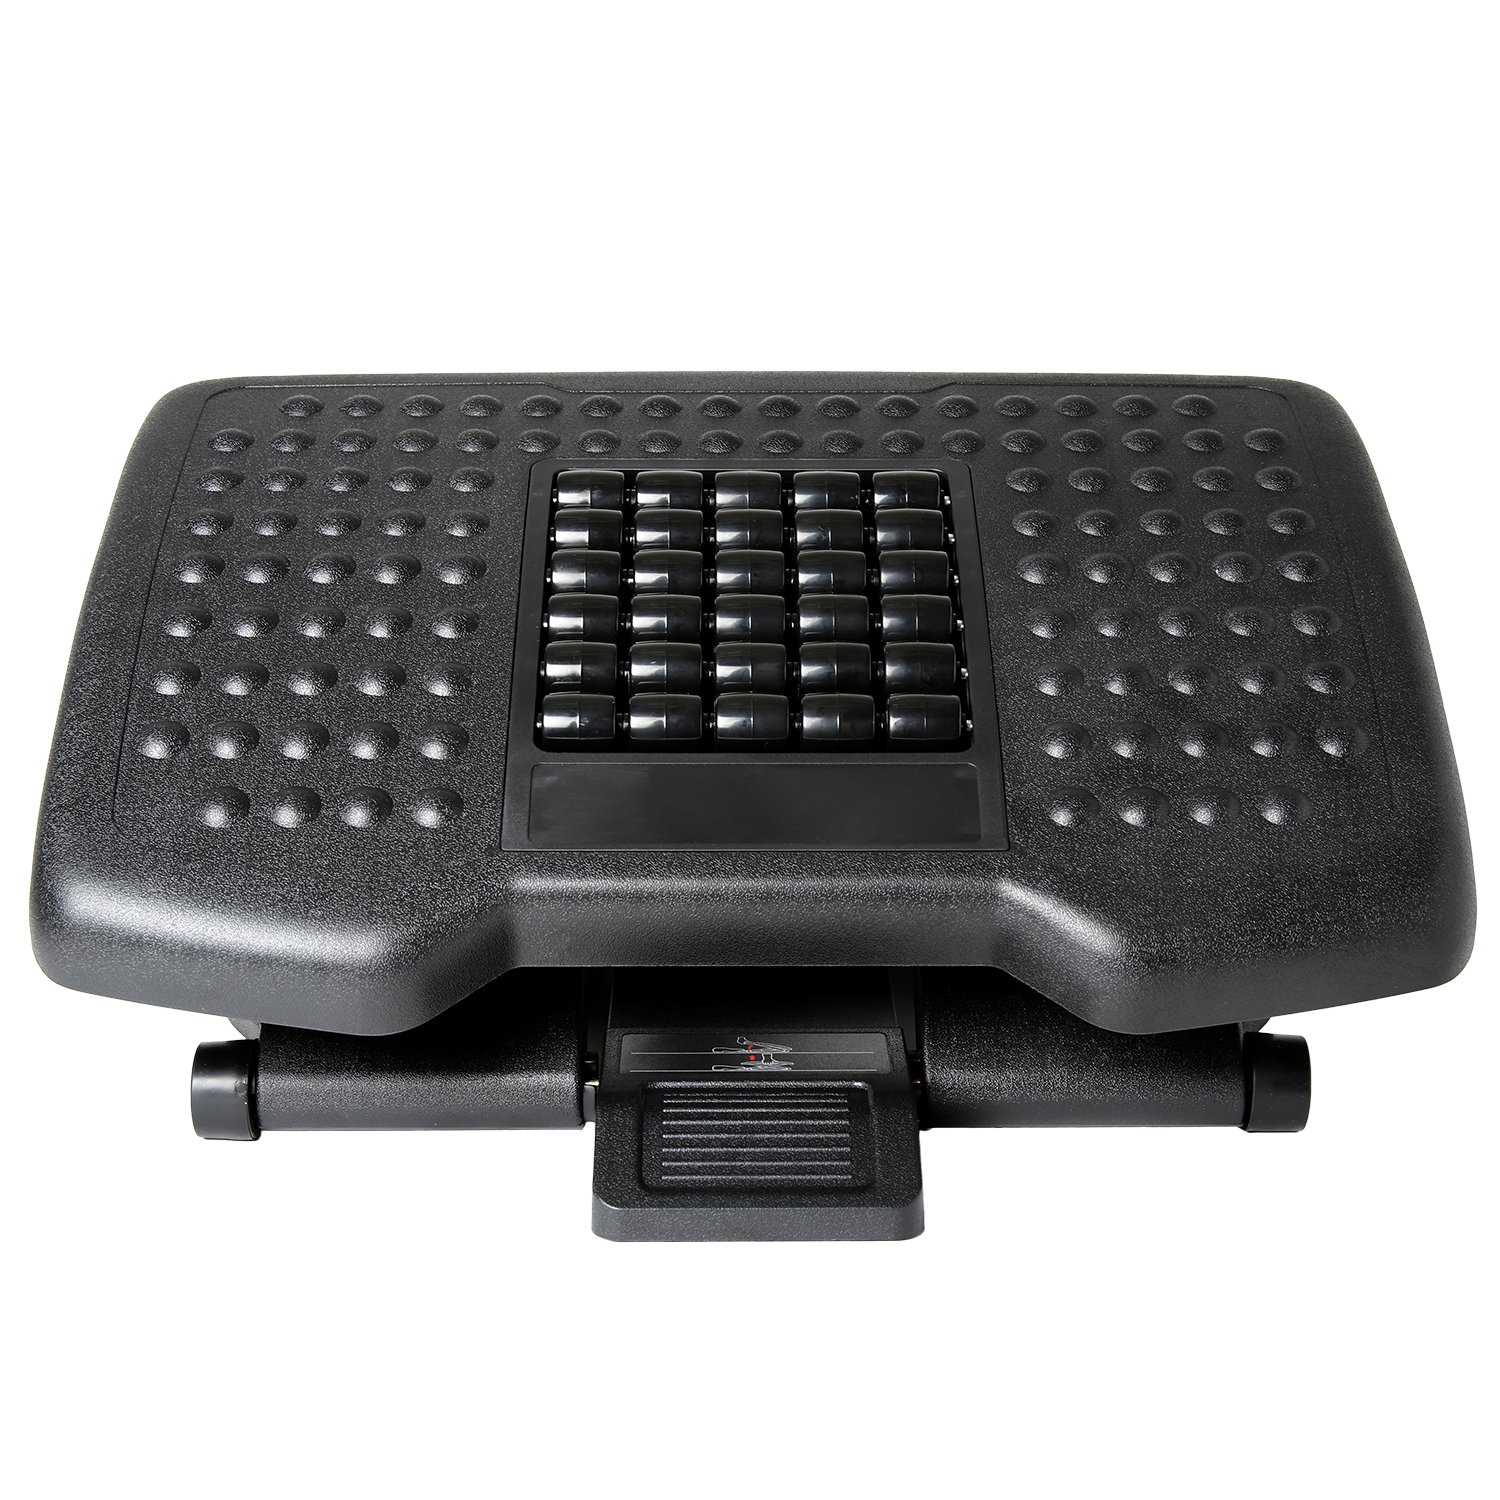 Ivation Adjustable Massage Footrest Rollers - Great Home, Office, Under Desk & More